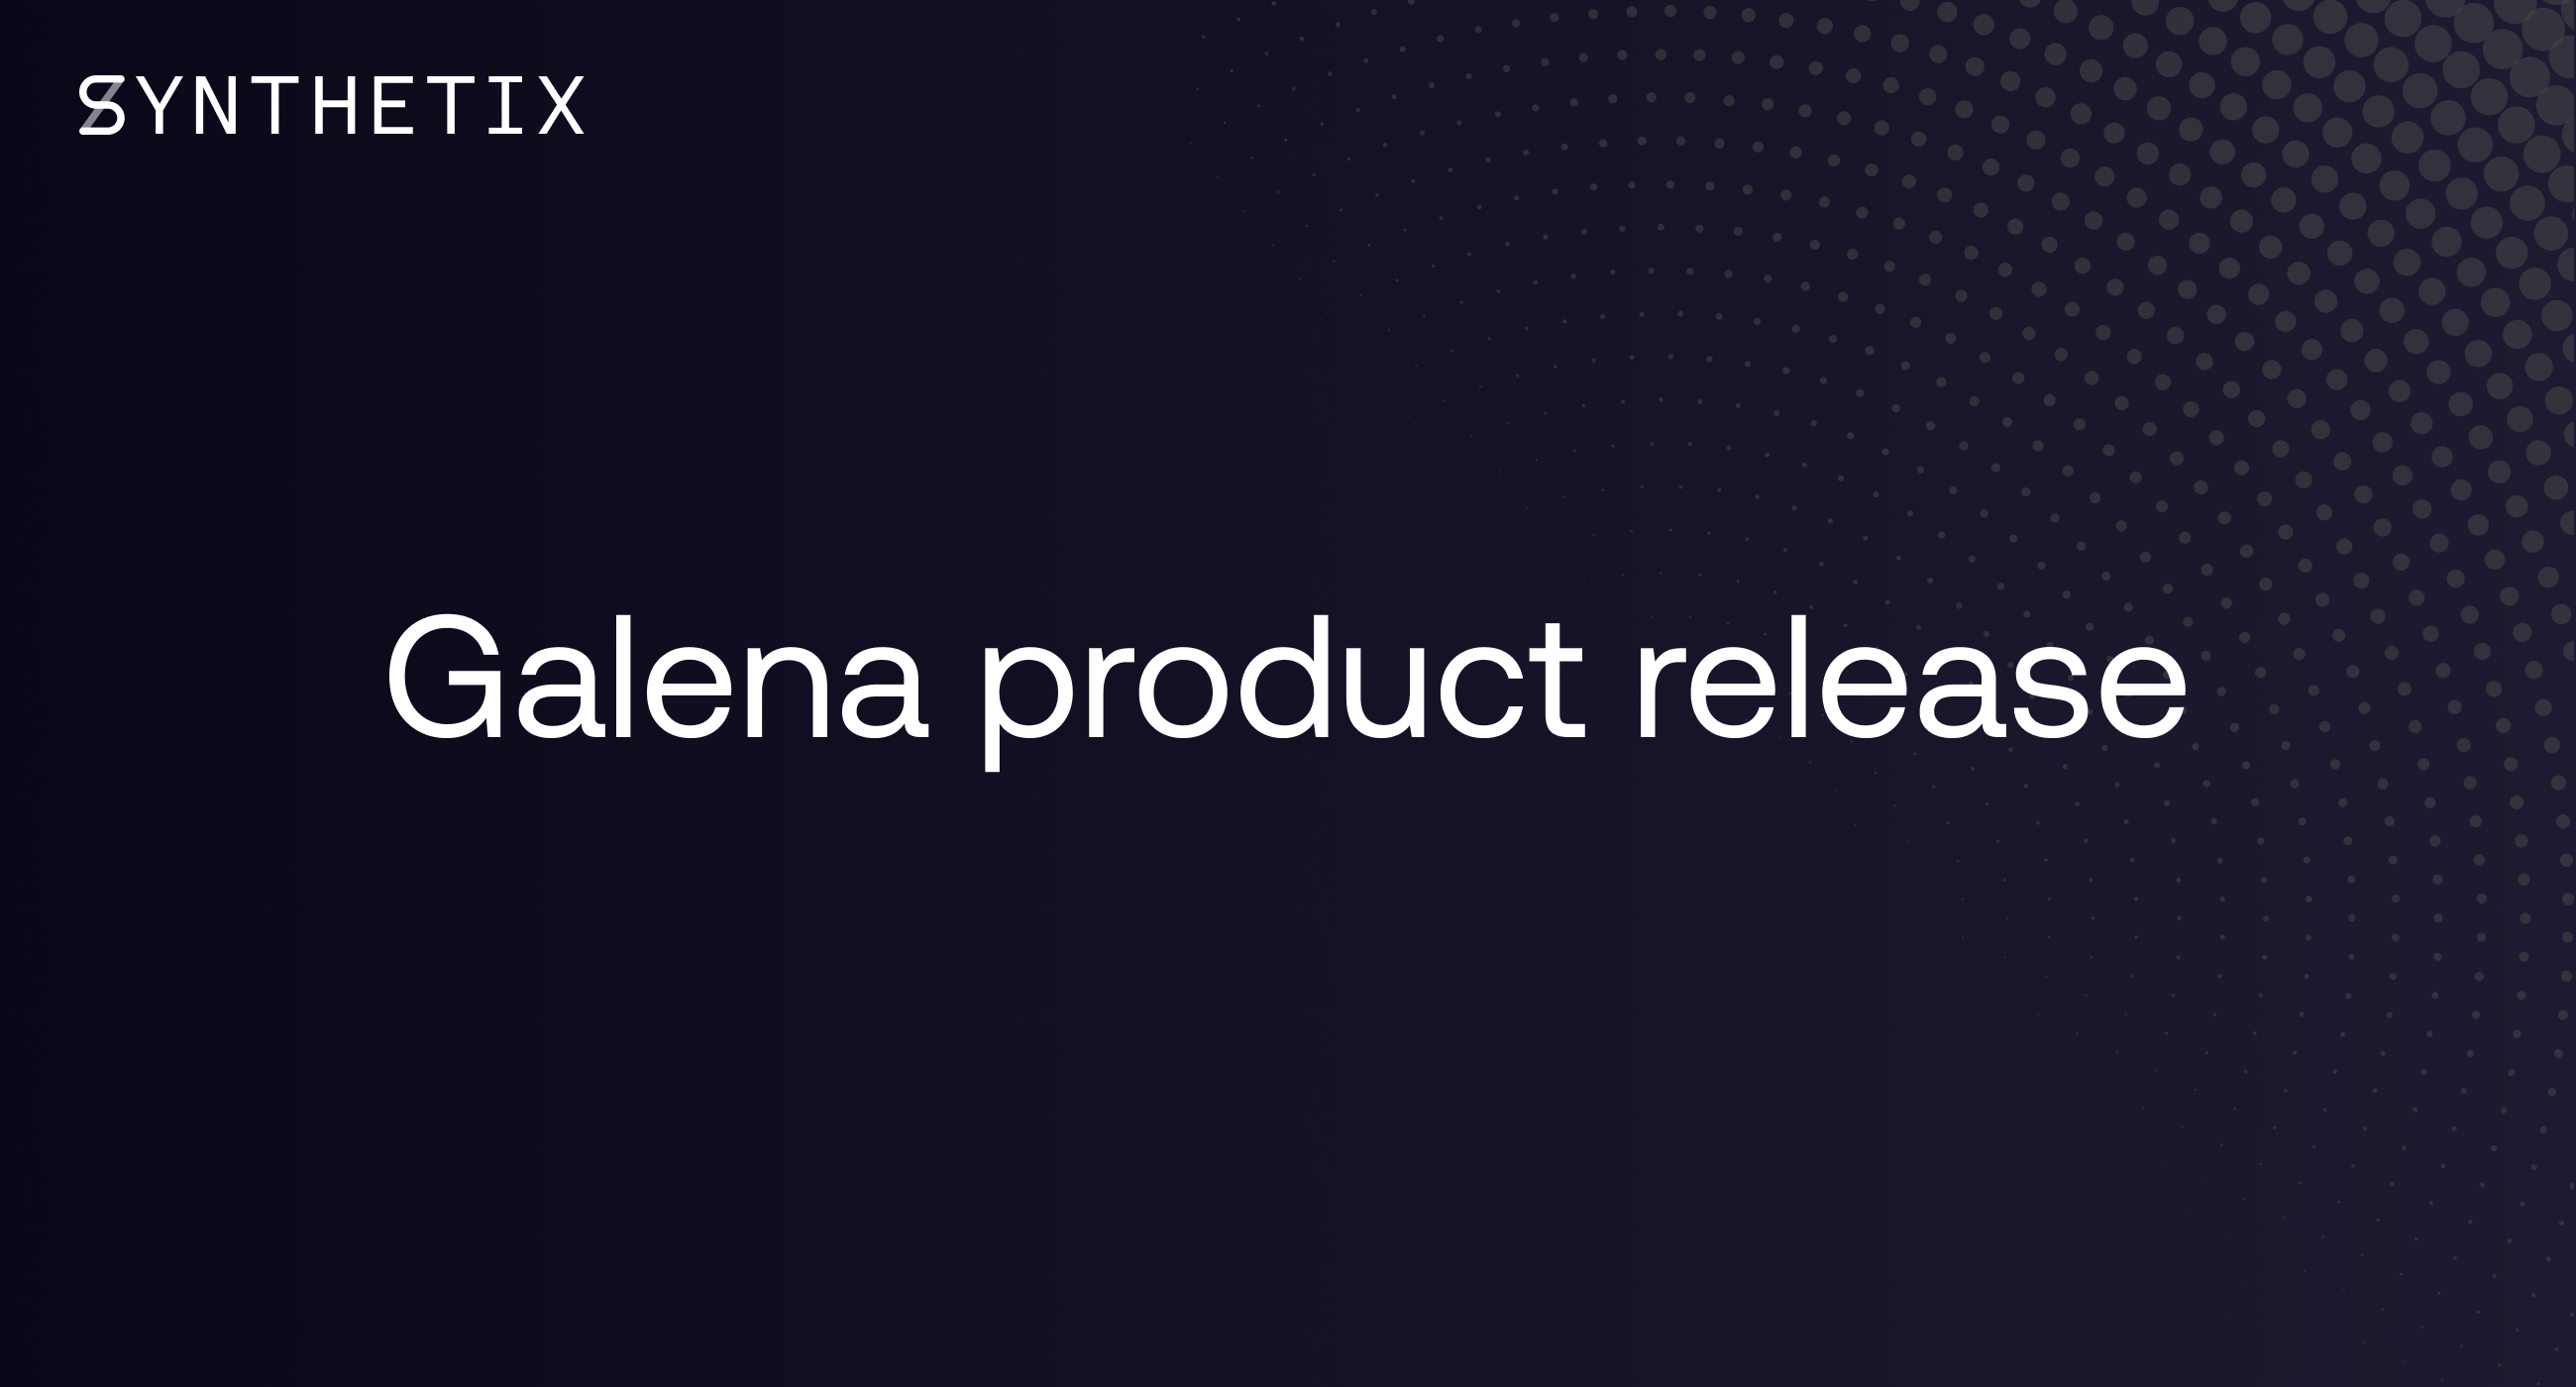 Galena product release